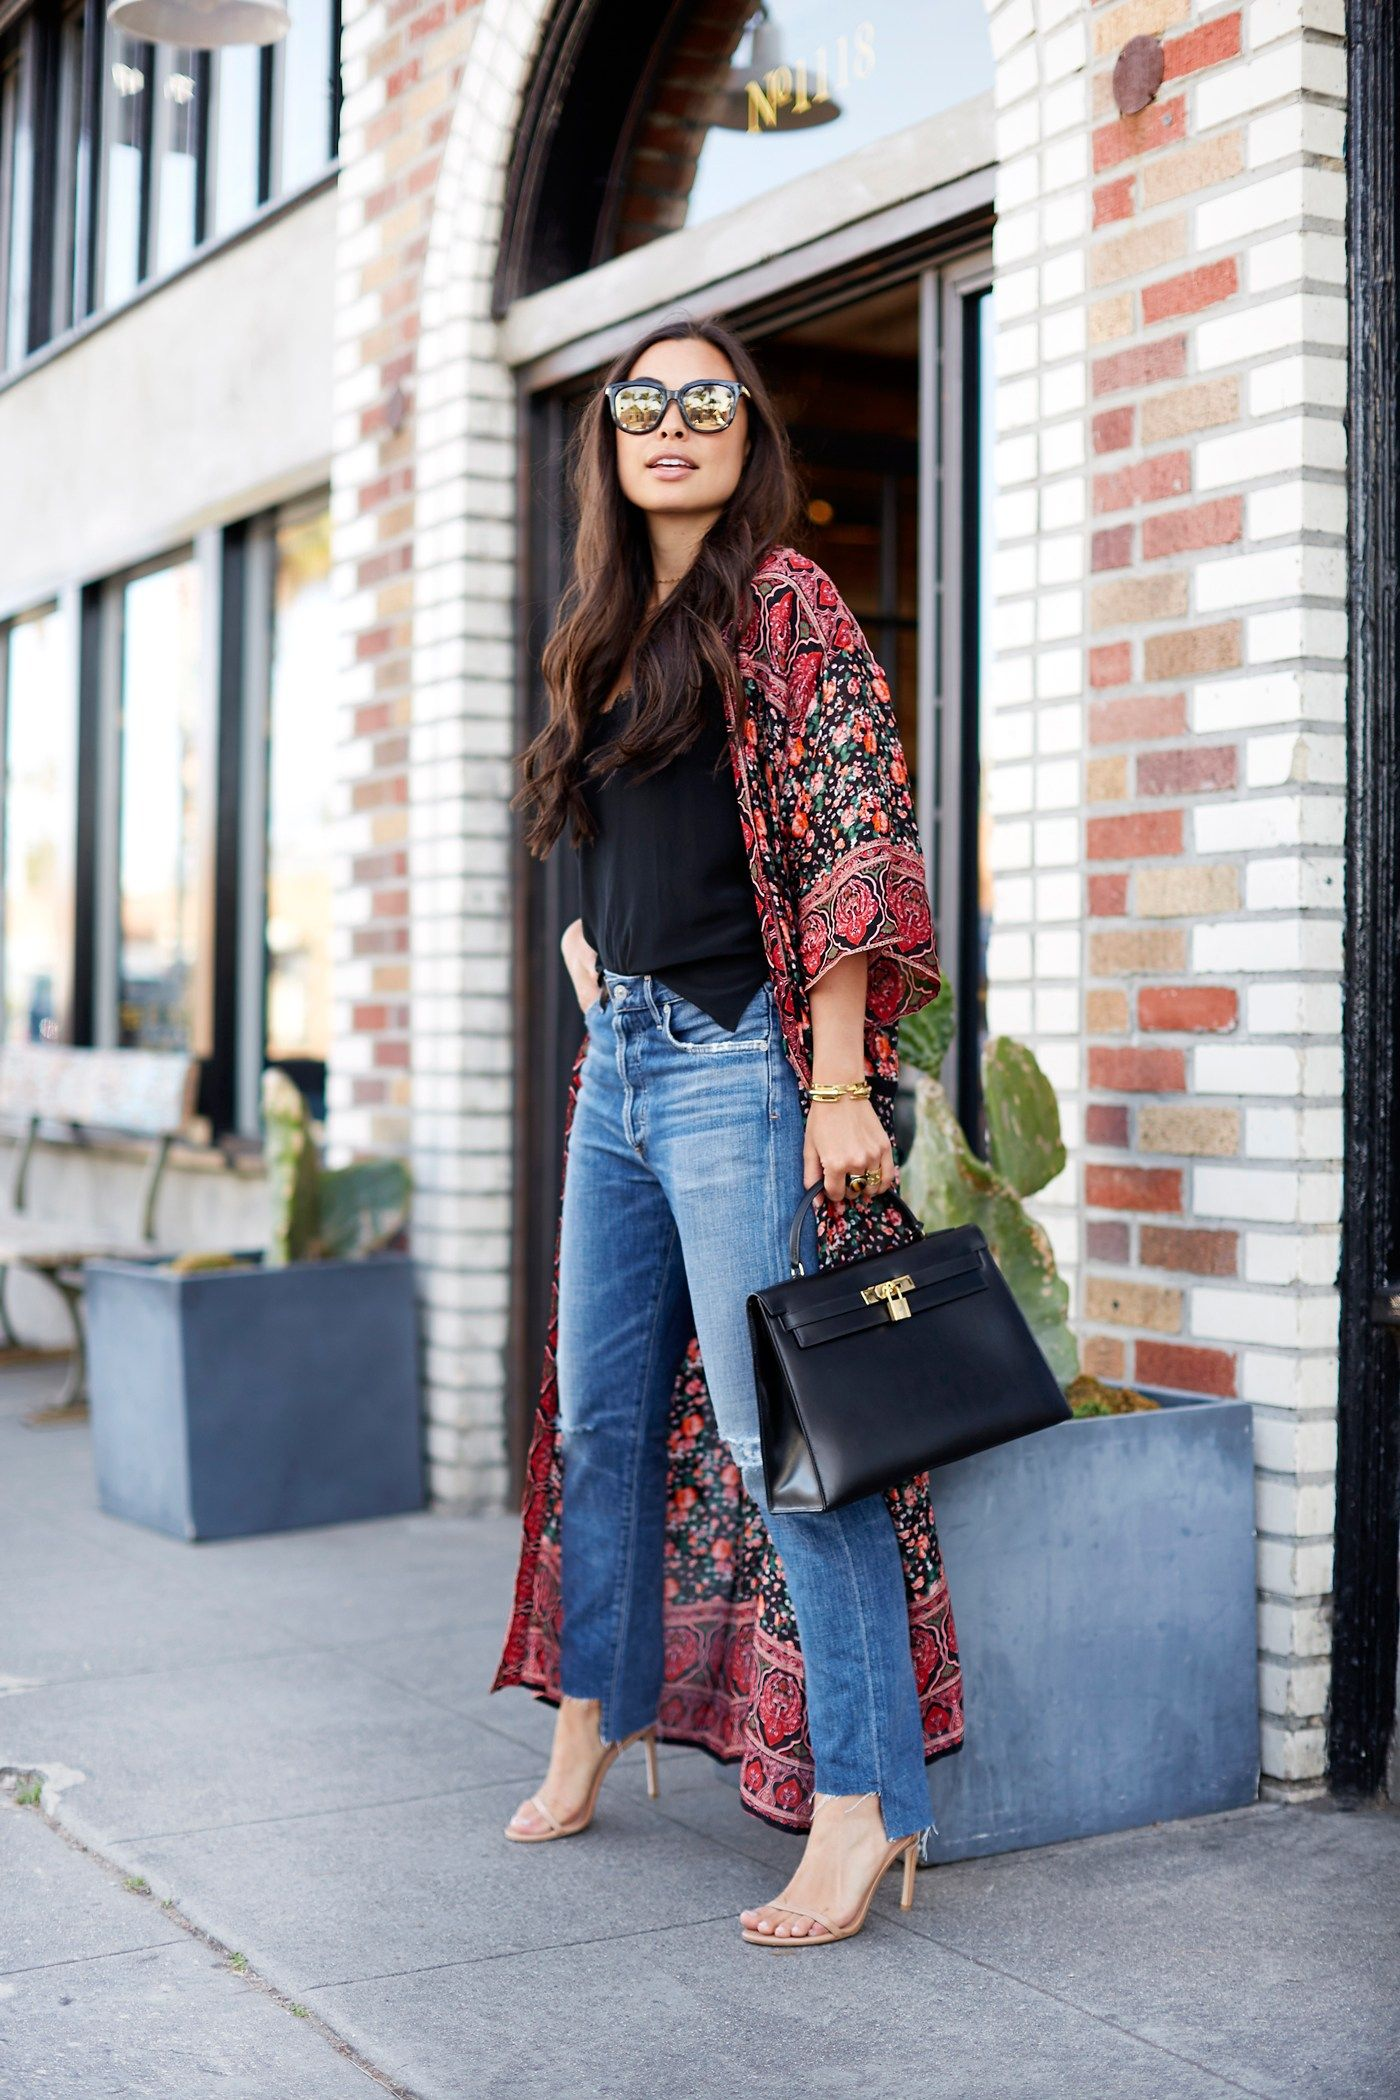 b3dfc2fd With Love From Kat // Kimono on Abbot Kinney. Black cami+cropped jeans+nude  ankle strap heeled sandals+floral long kimono+black handbag+sunglasses.